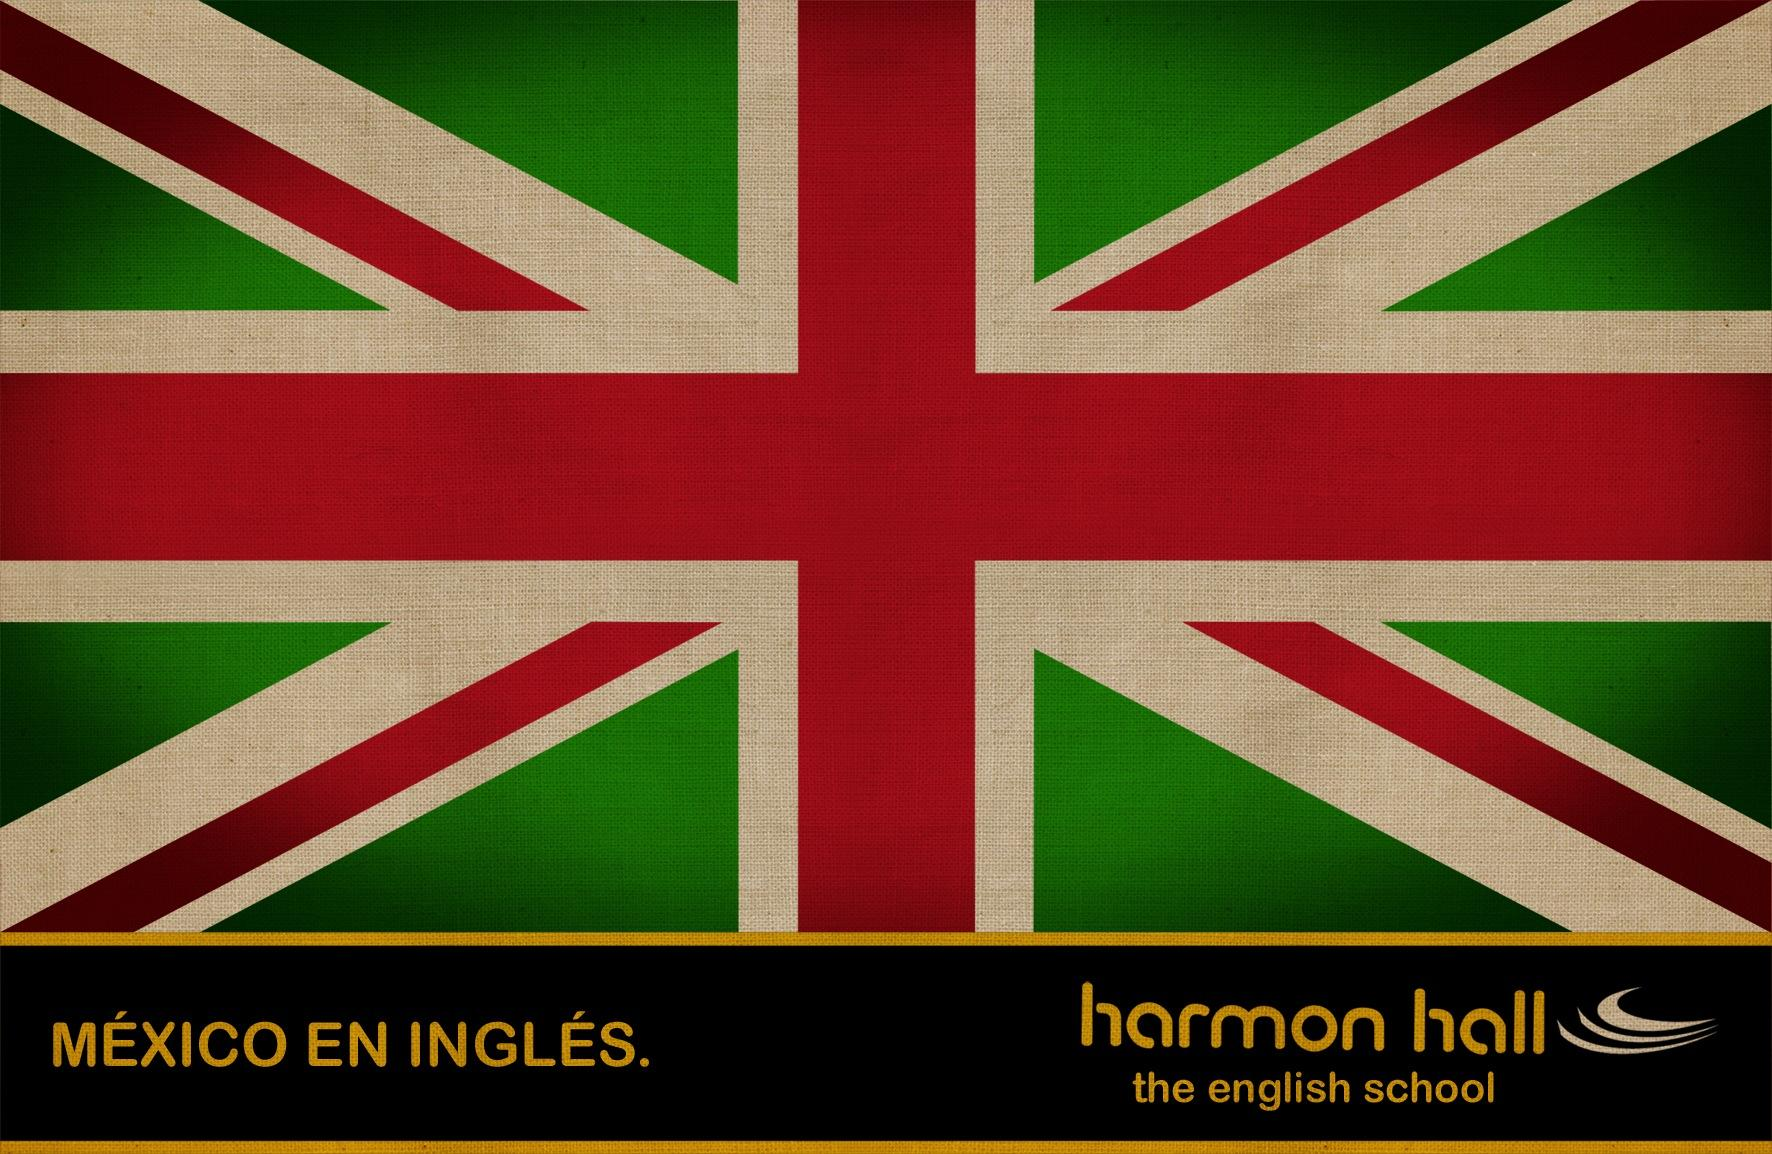 Harmon Hall Print Ad -  Mexico in English, 1